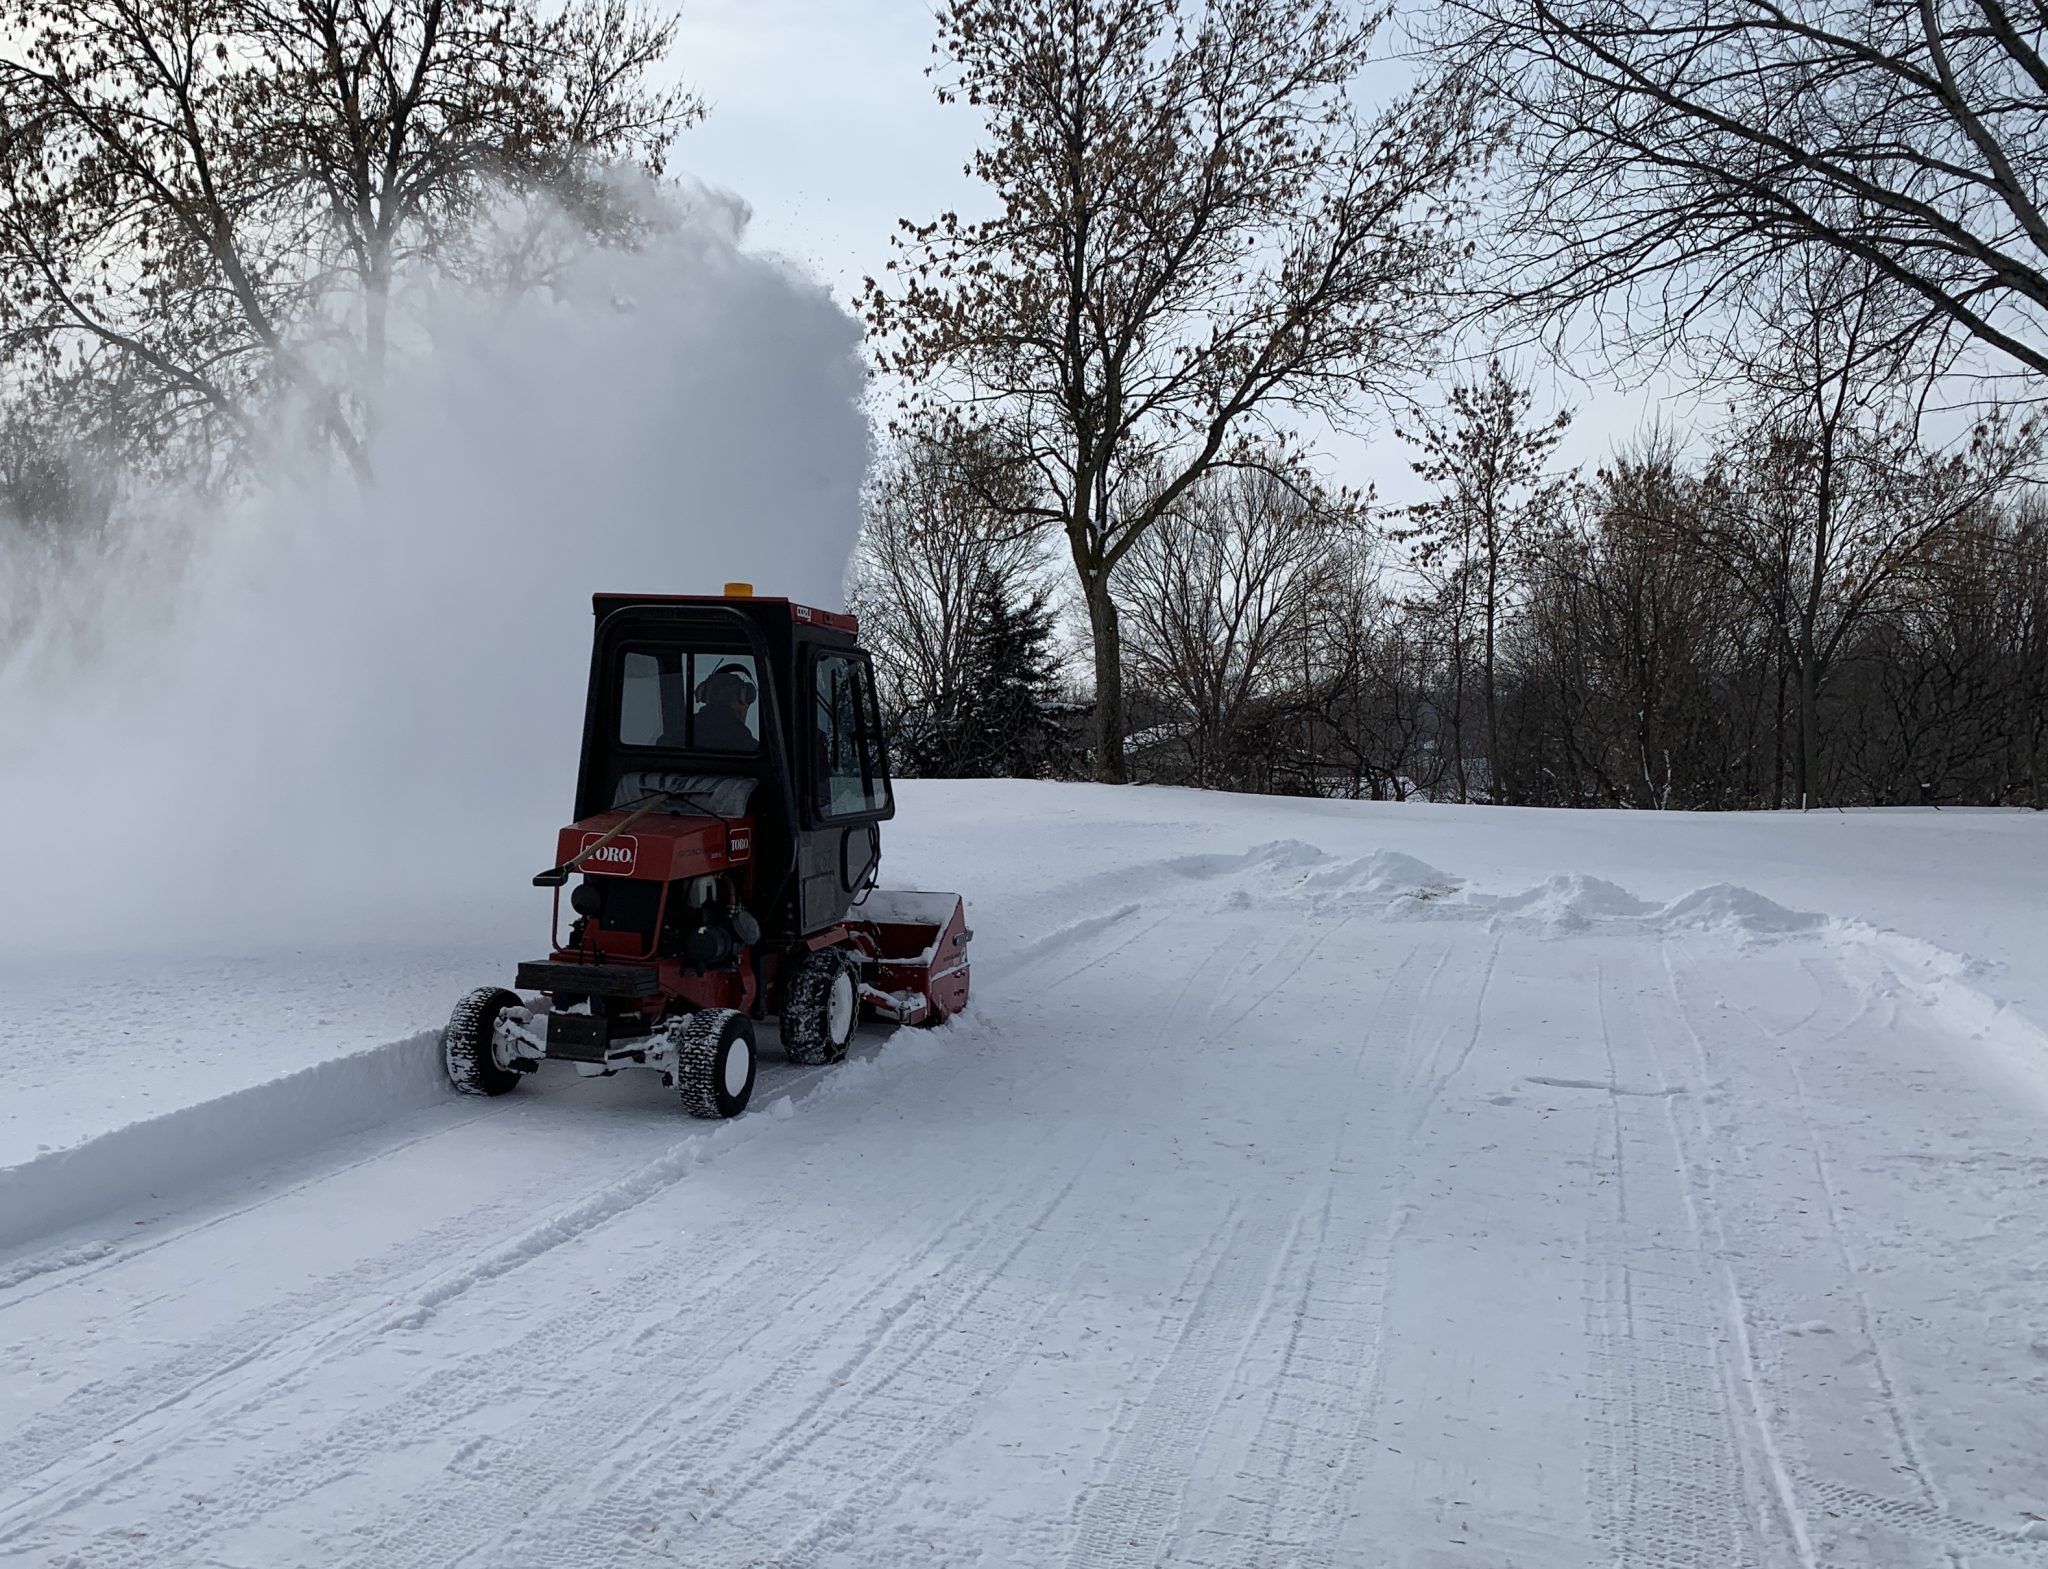 Island View Golf Club removing snow from greens